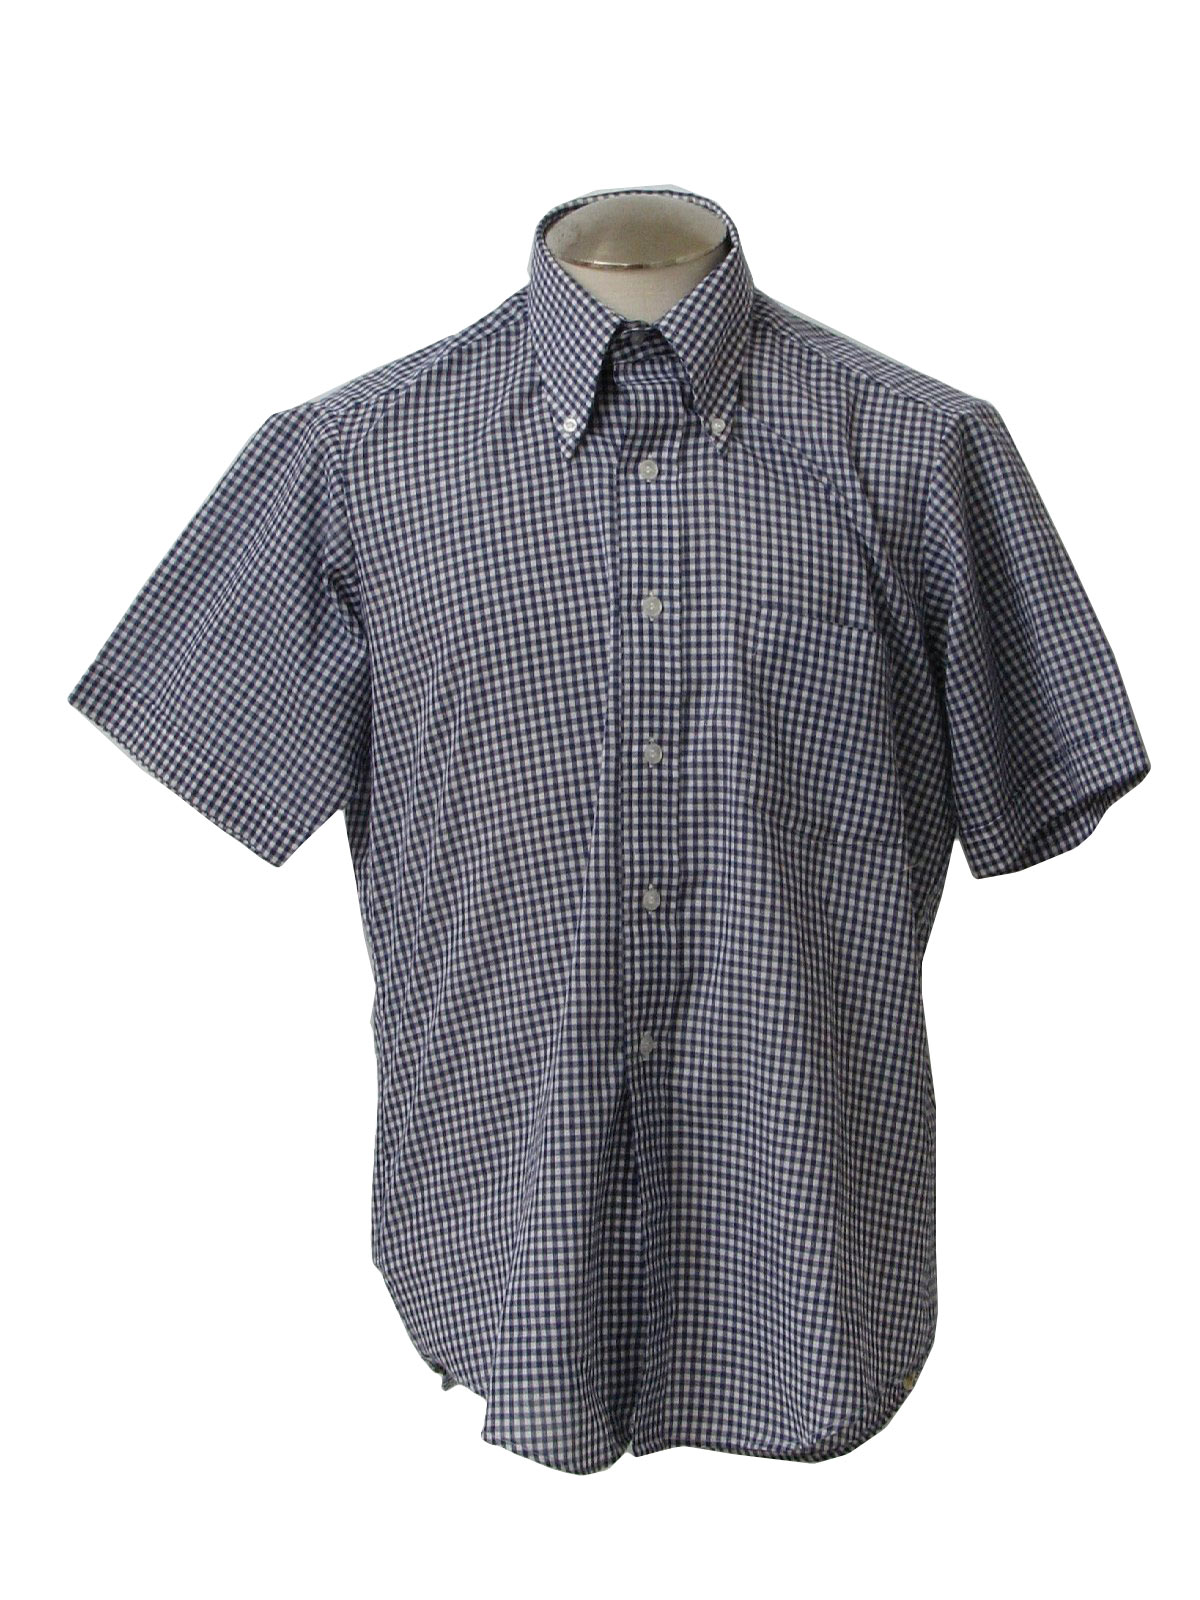 265ba37c7 Vintage Cadre Seventies Shirt: 70s -Cadre- Mens navy blue and white ...